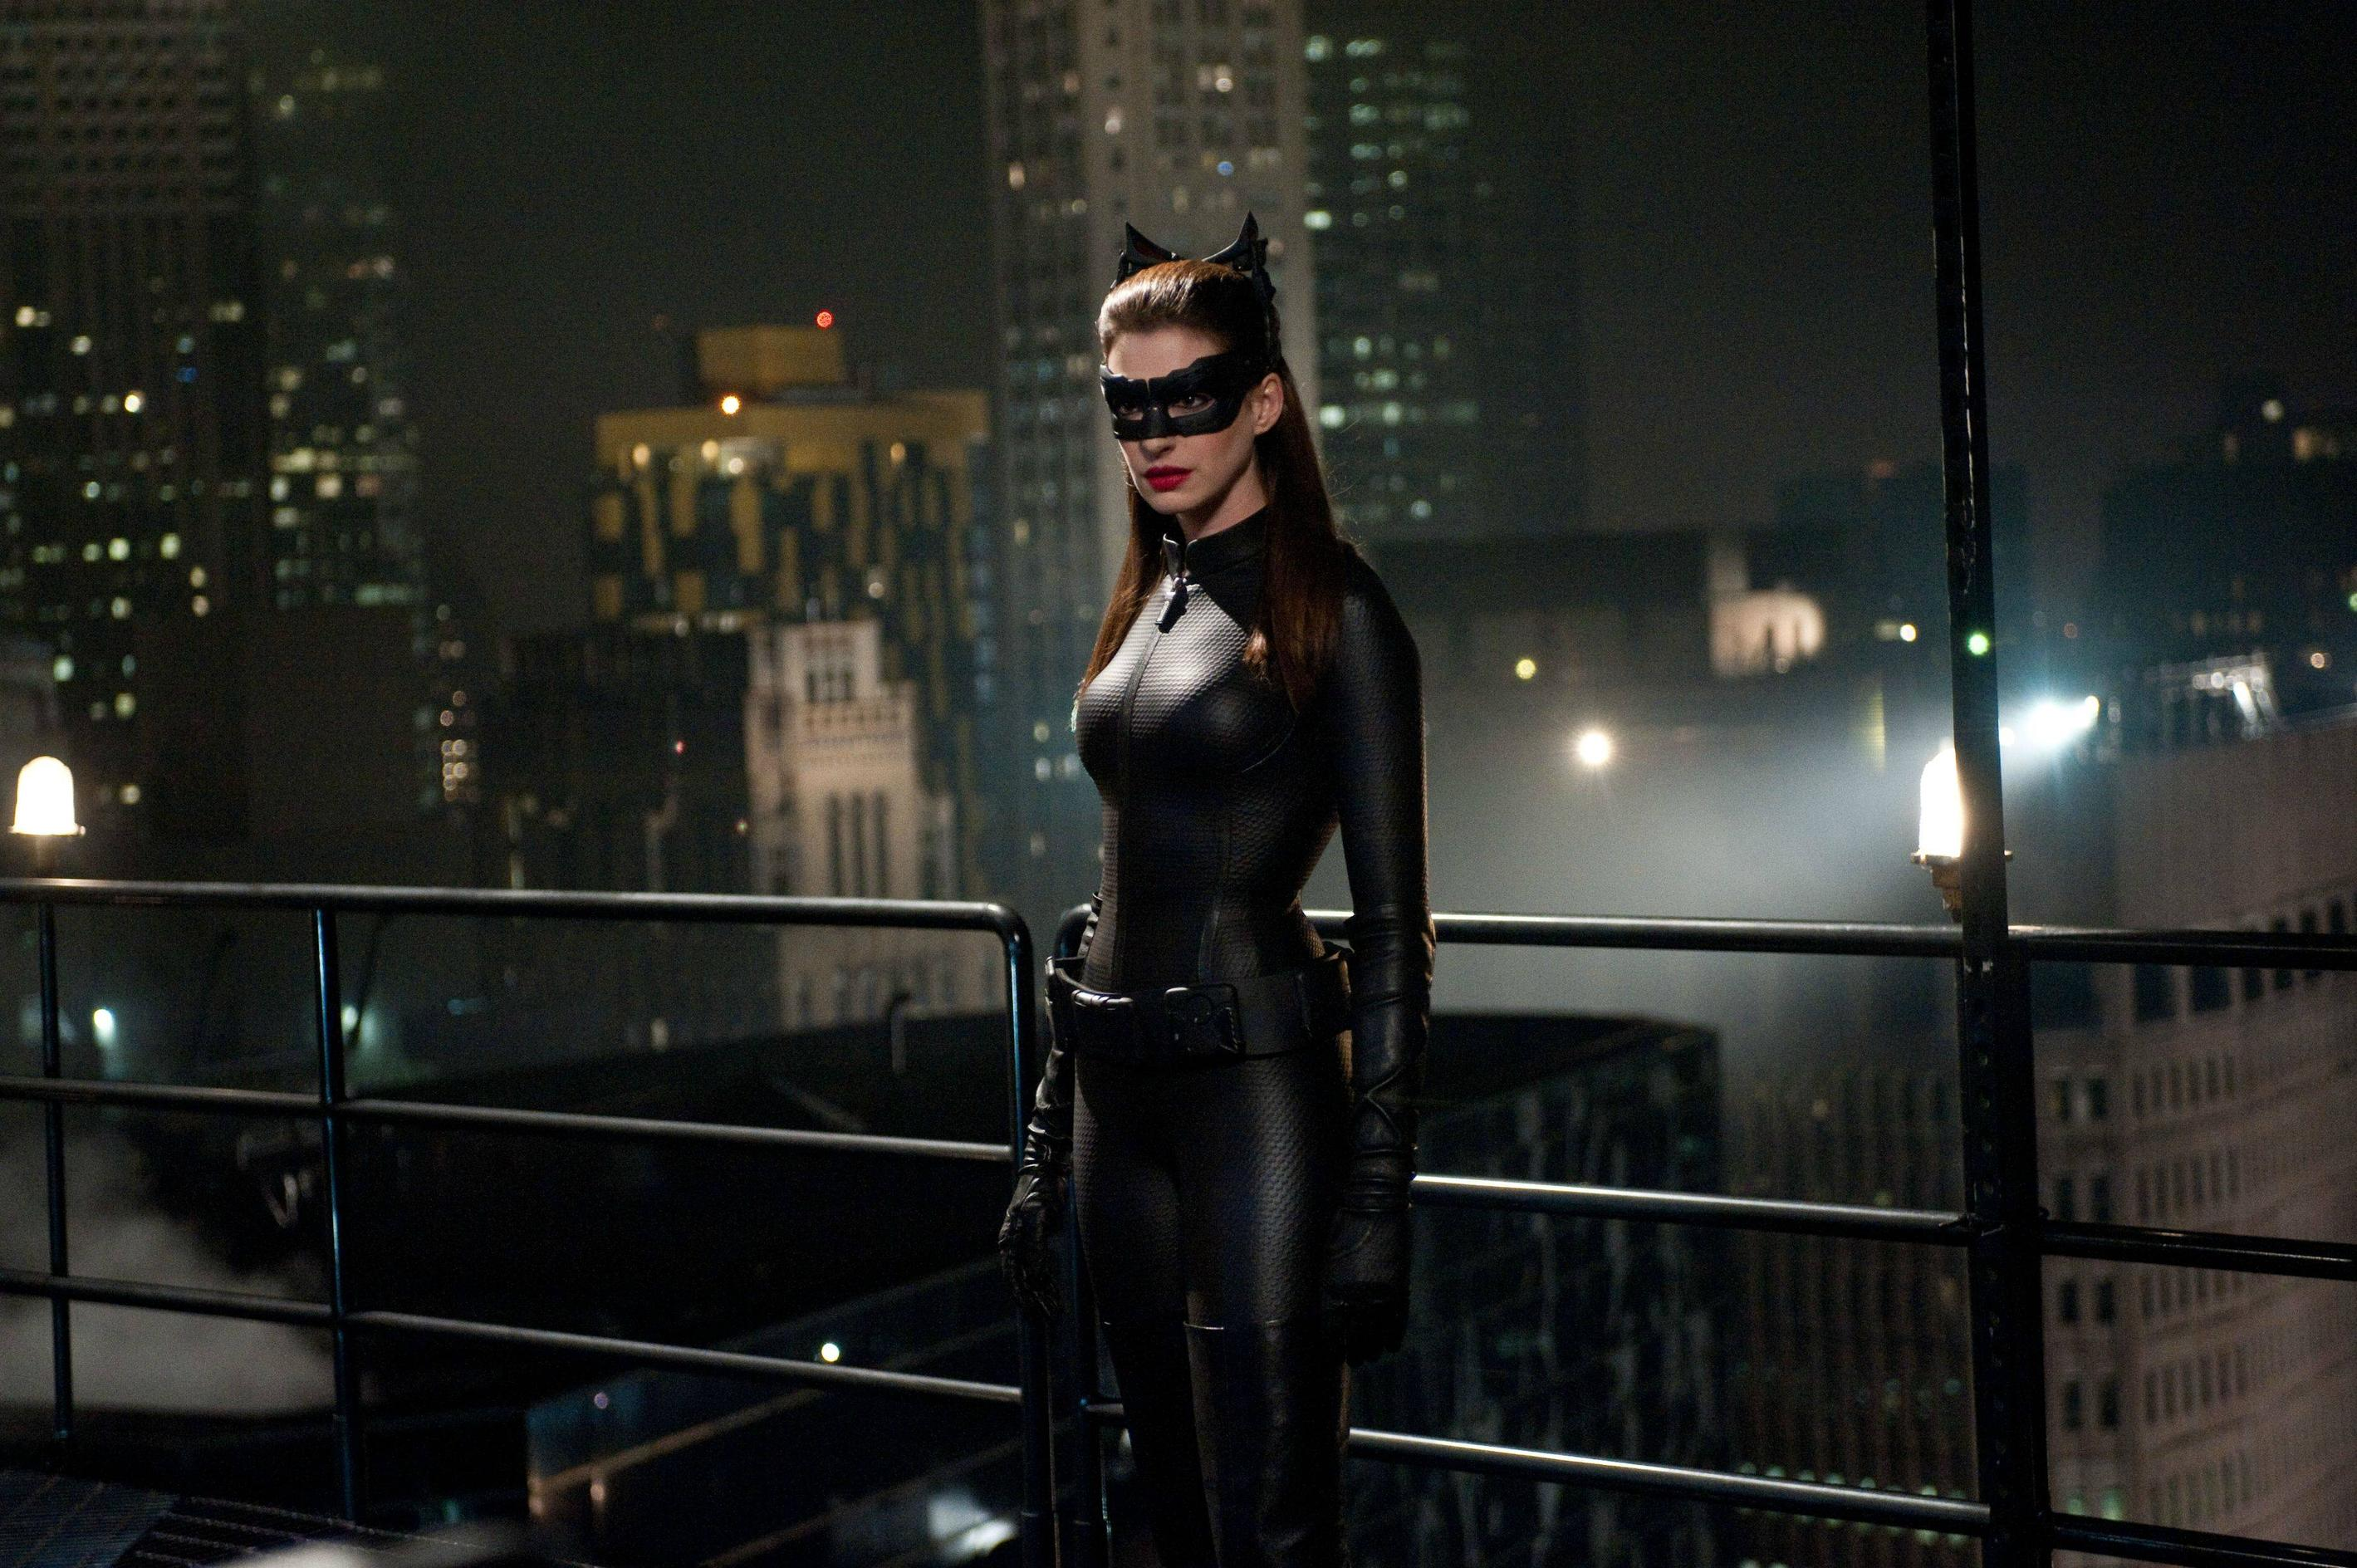 「catwoman dark knight rises」の画像検索結果